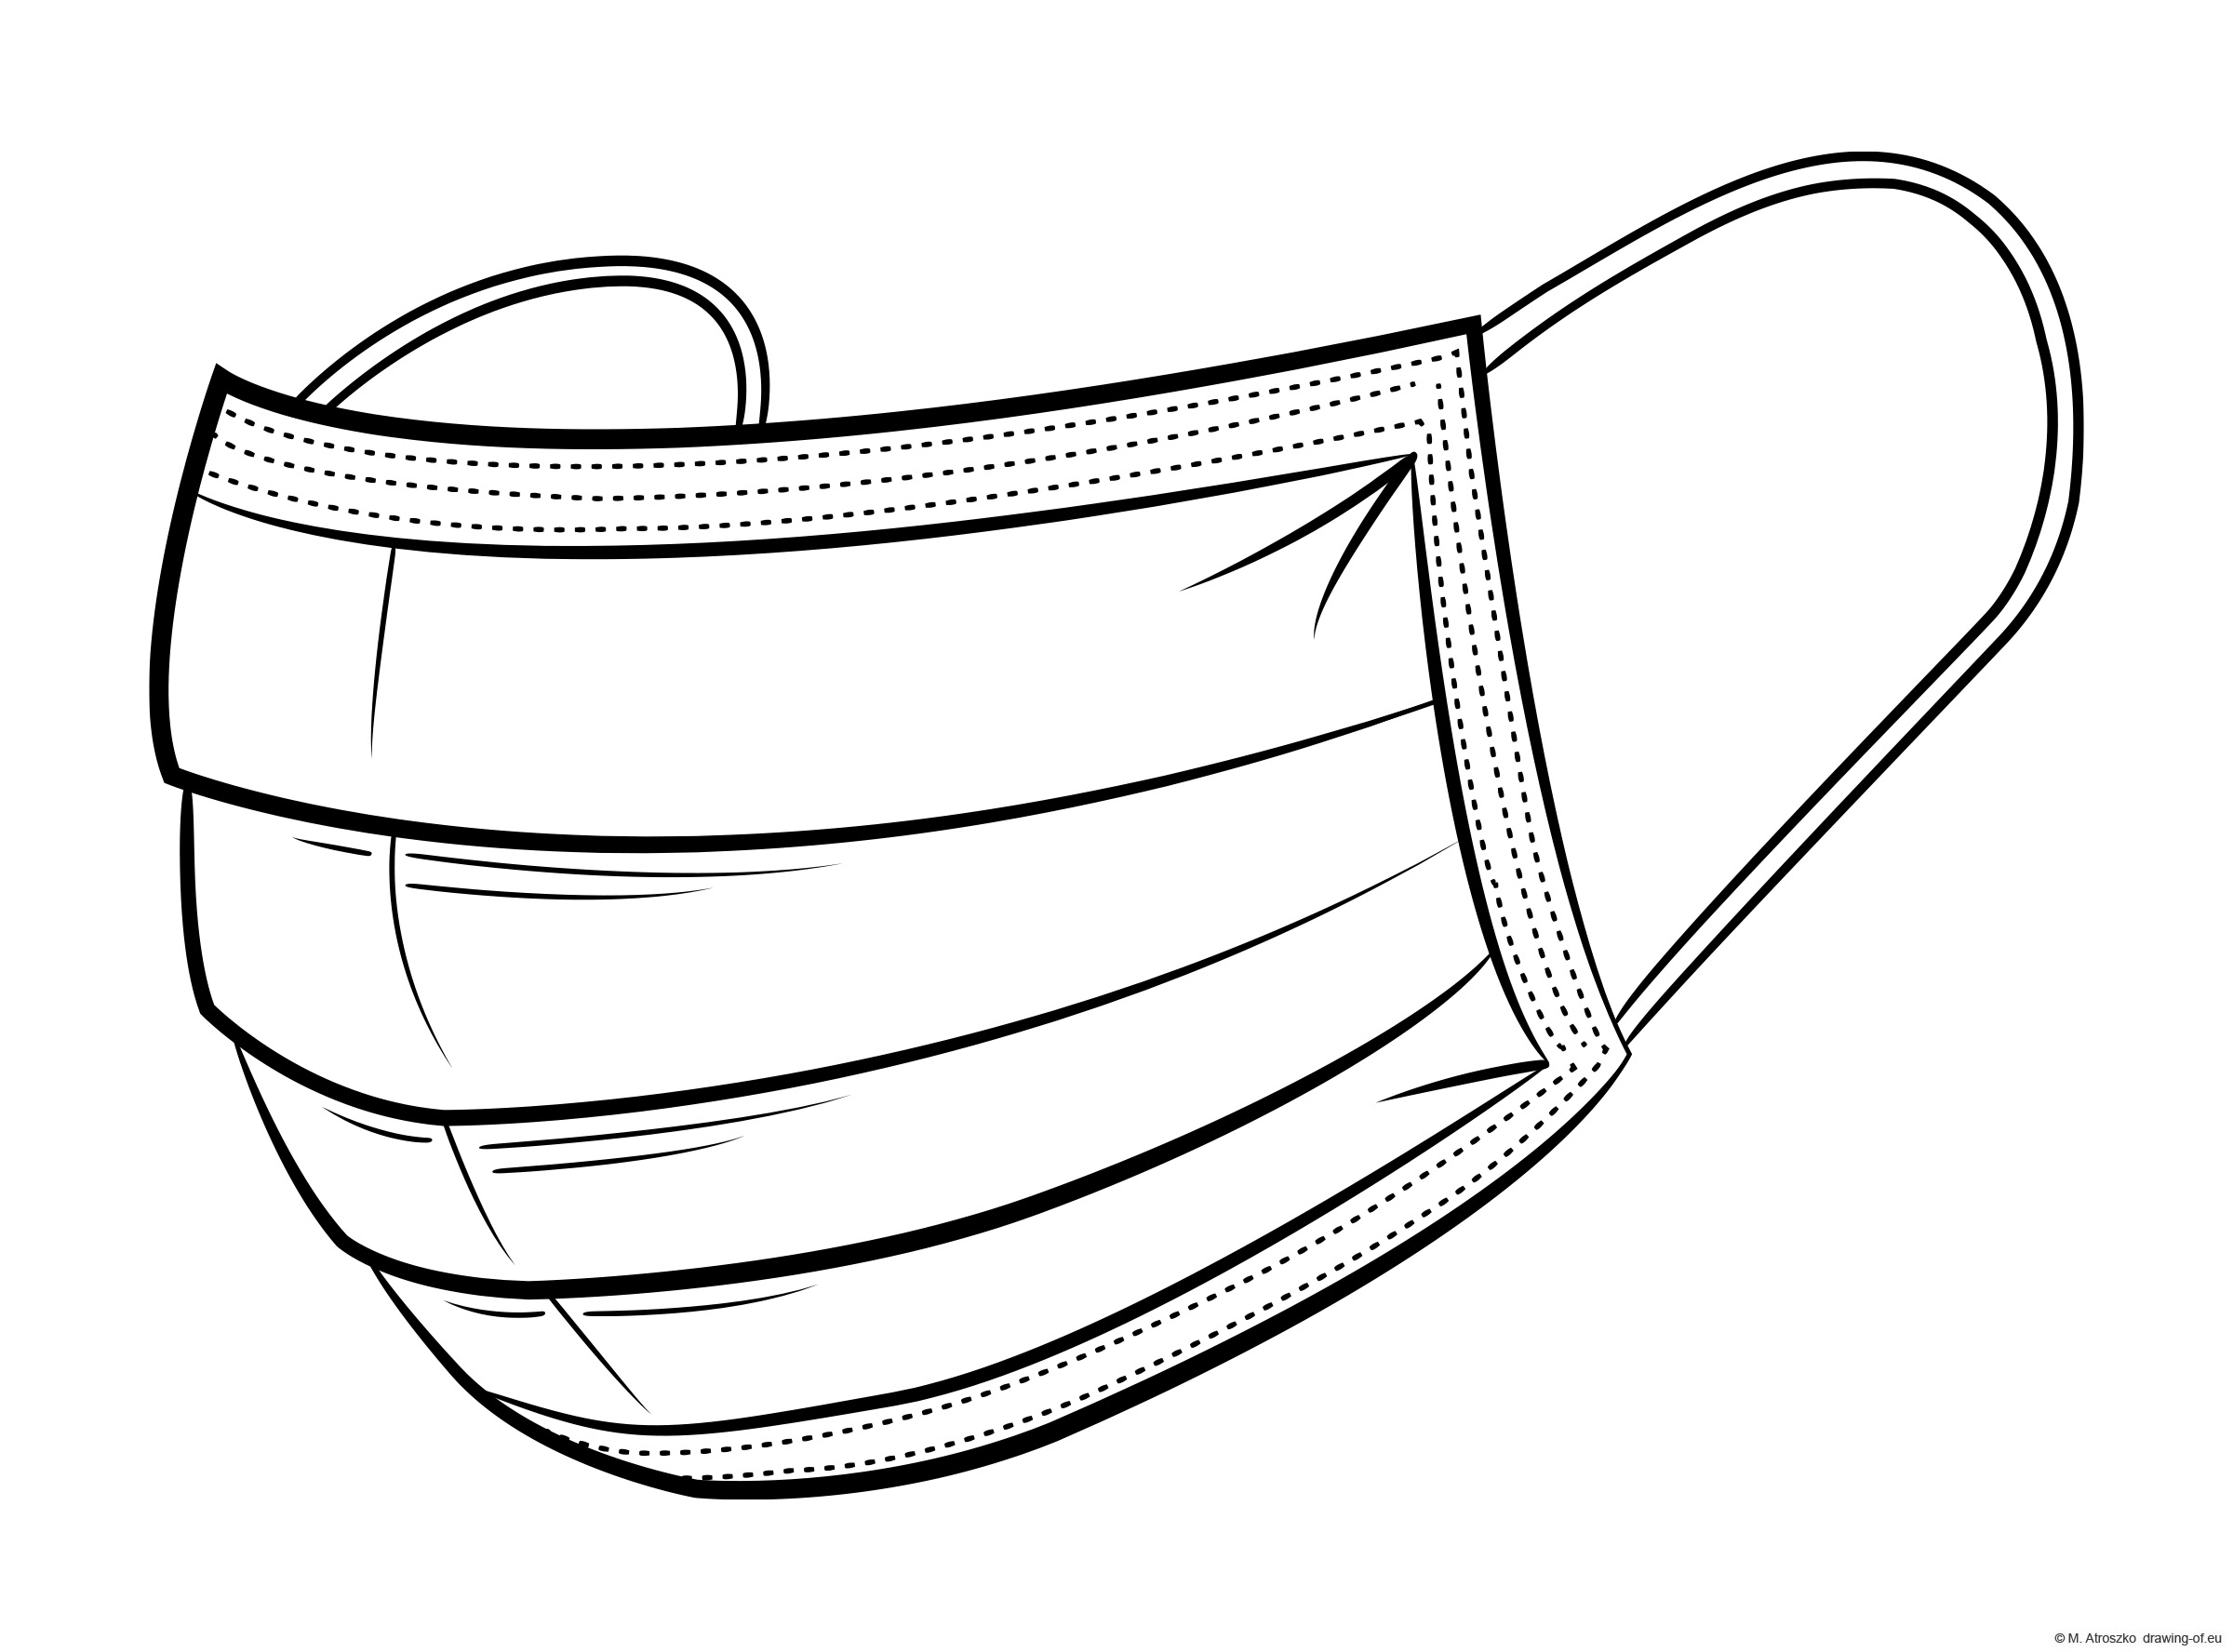 Covid mask coloring page